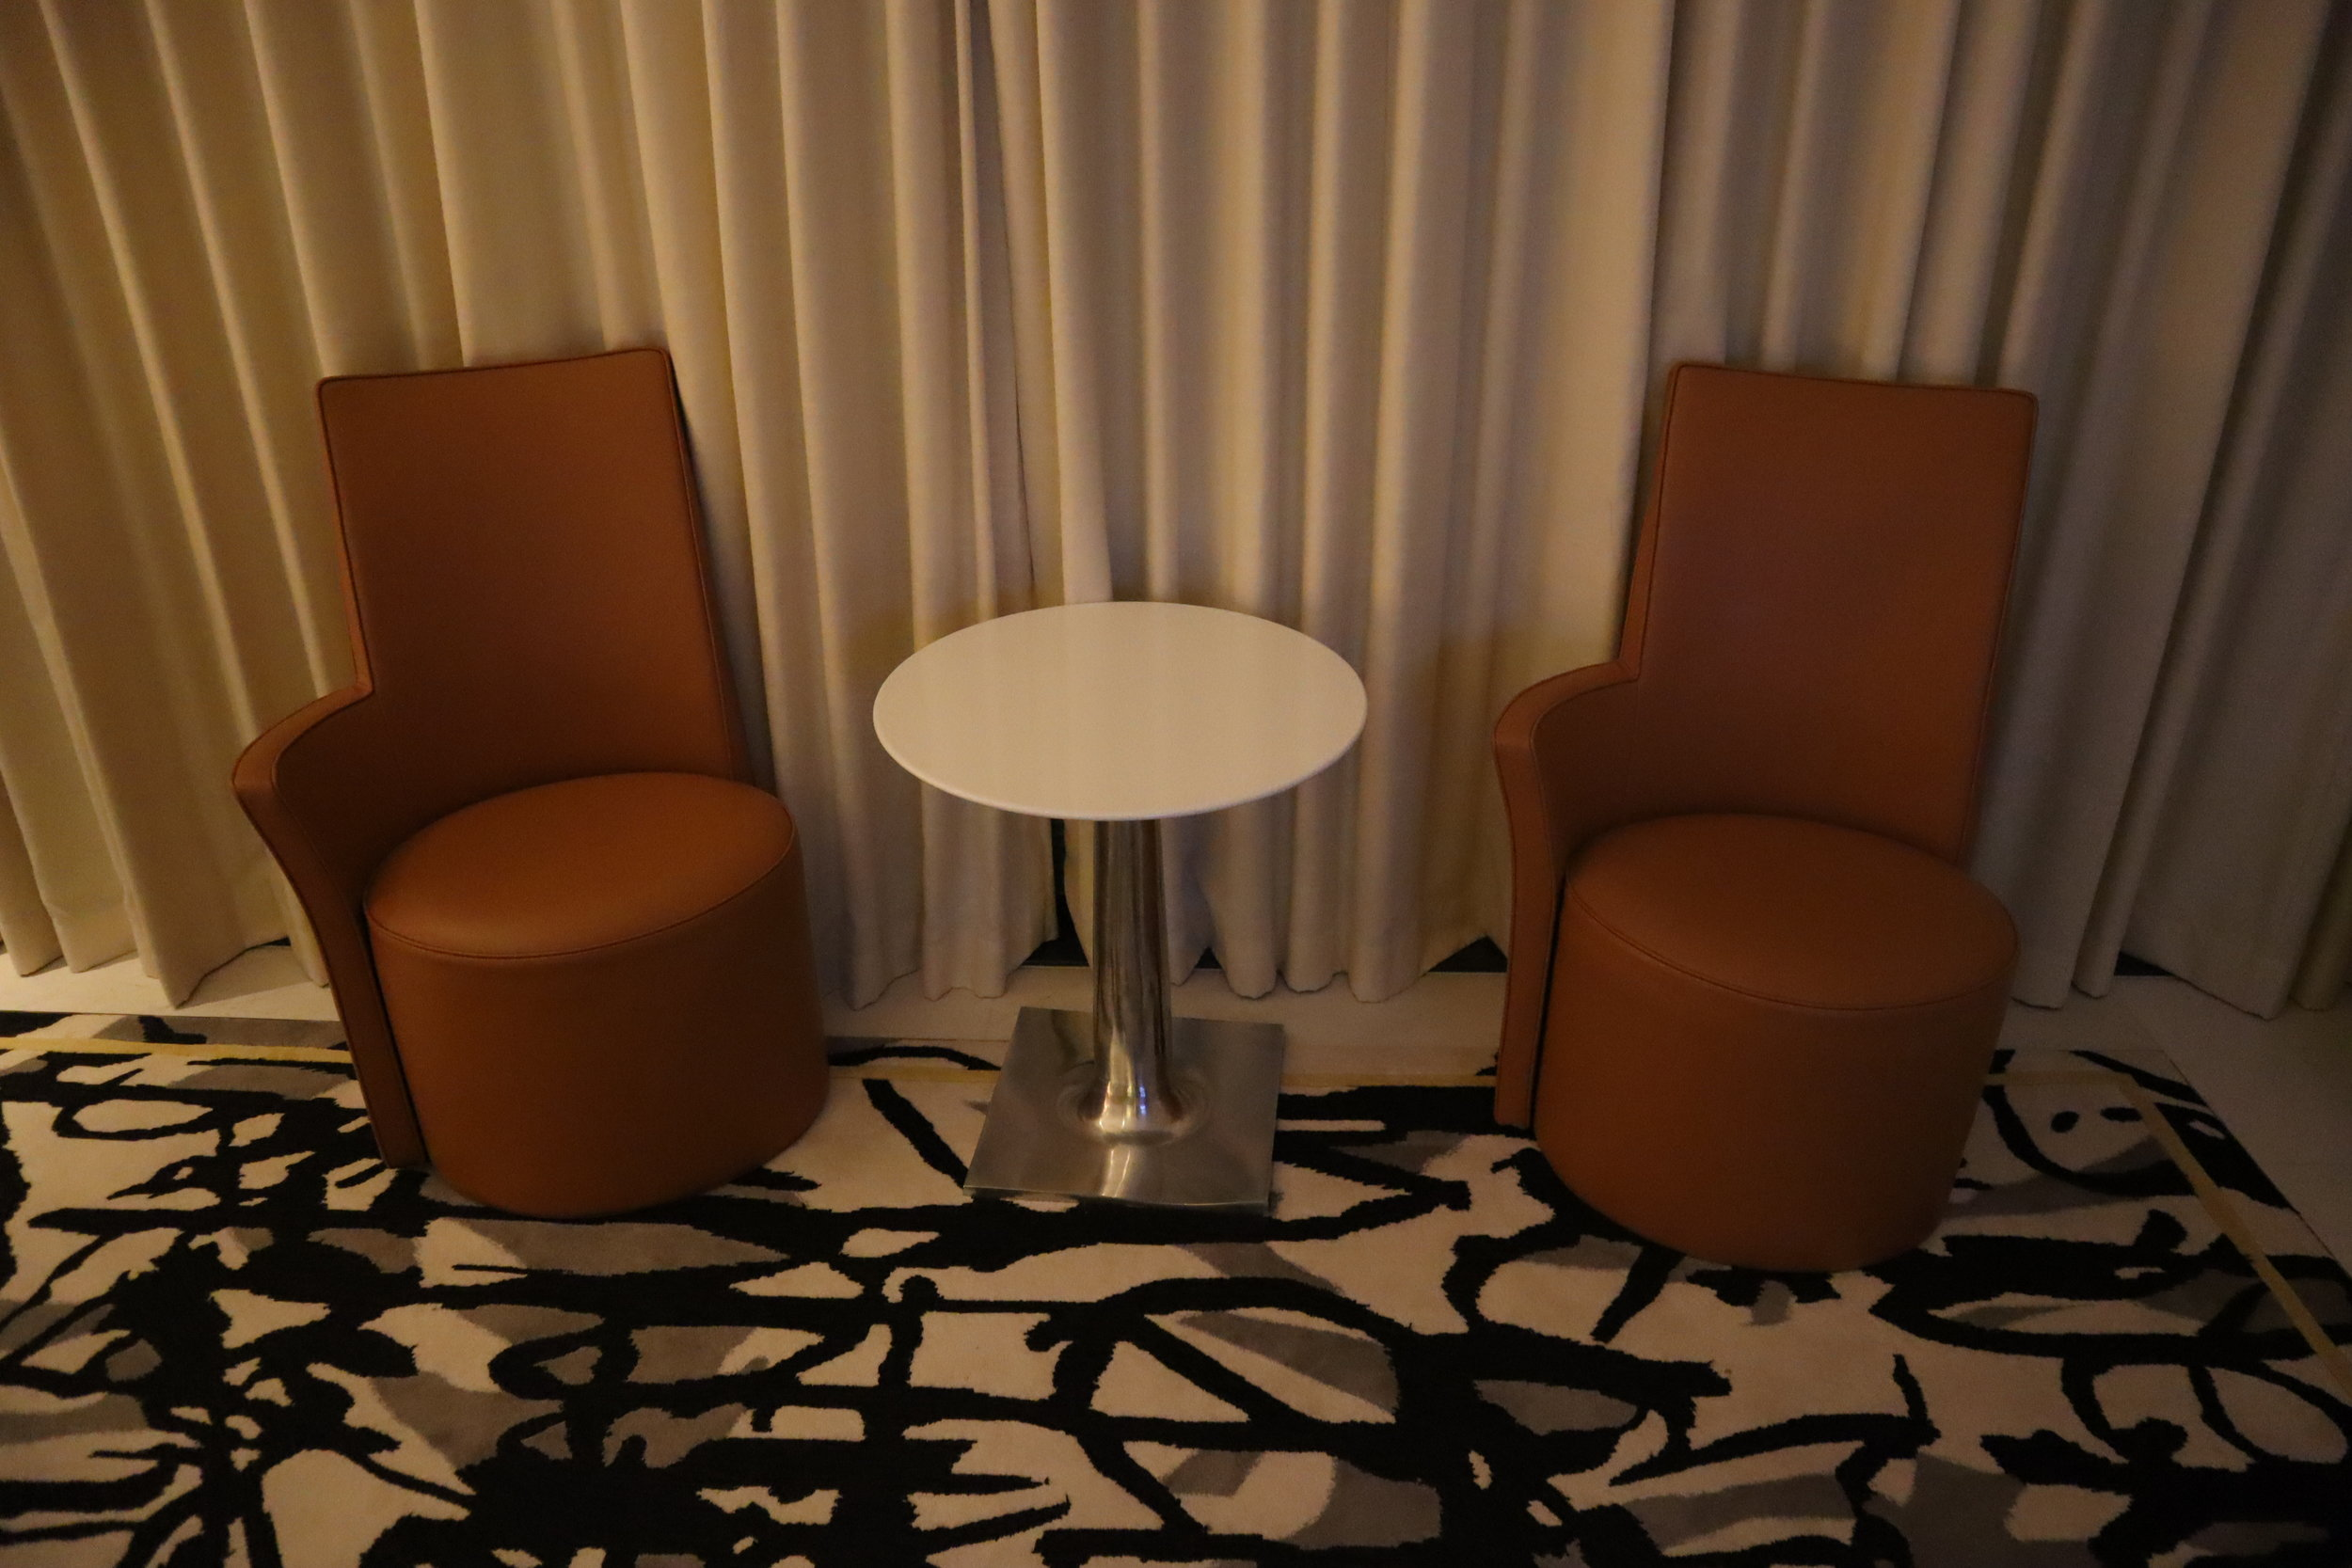 JW Marriott Singapore South Beach – Sitting area